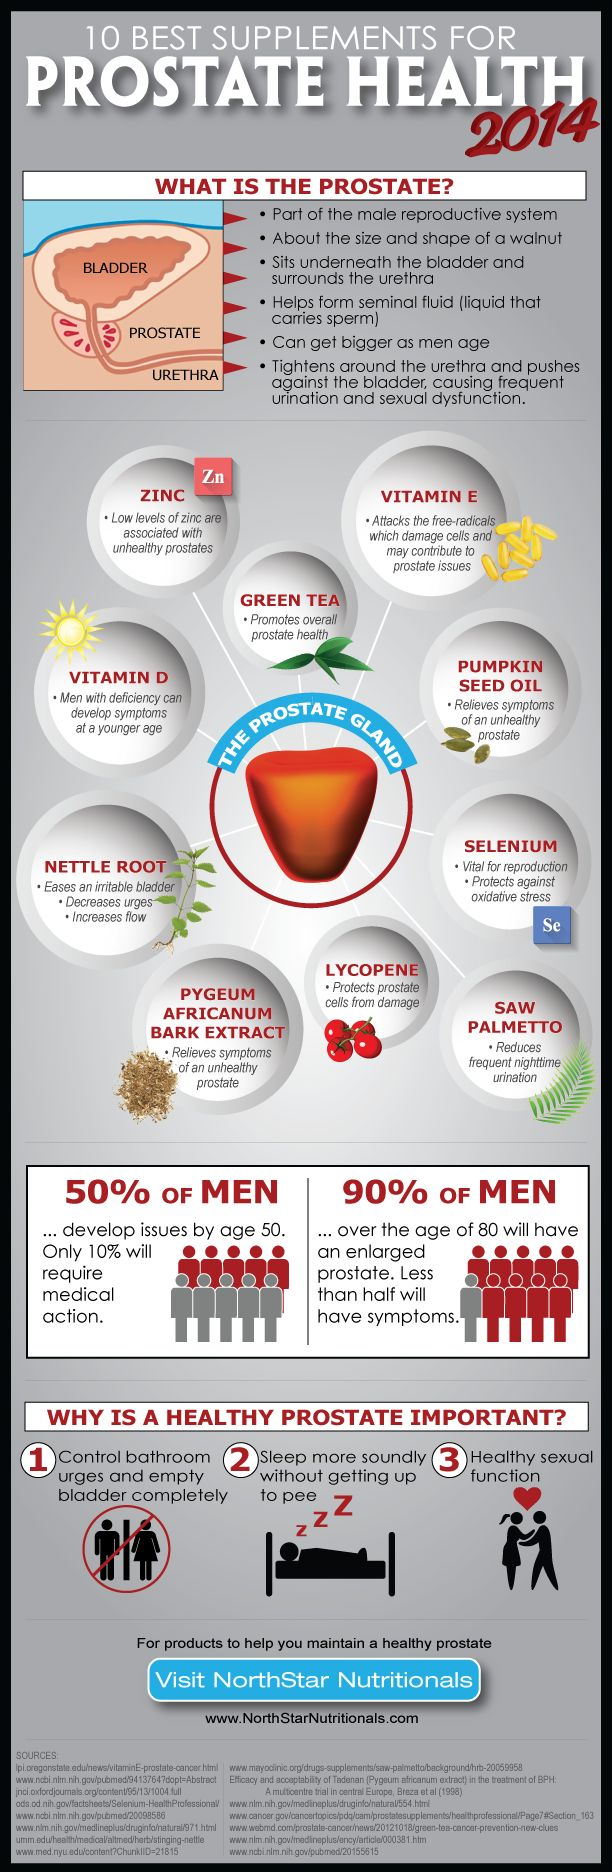 The Ten Best Supplements for Prostate Health. Infographic. #health #wellness #men